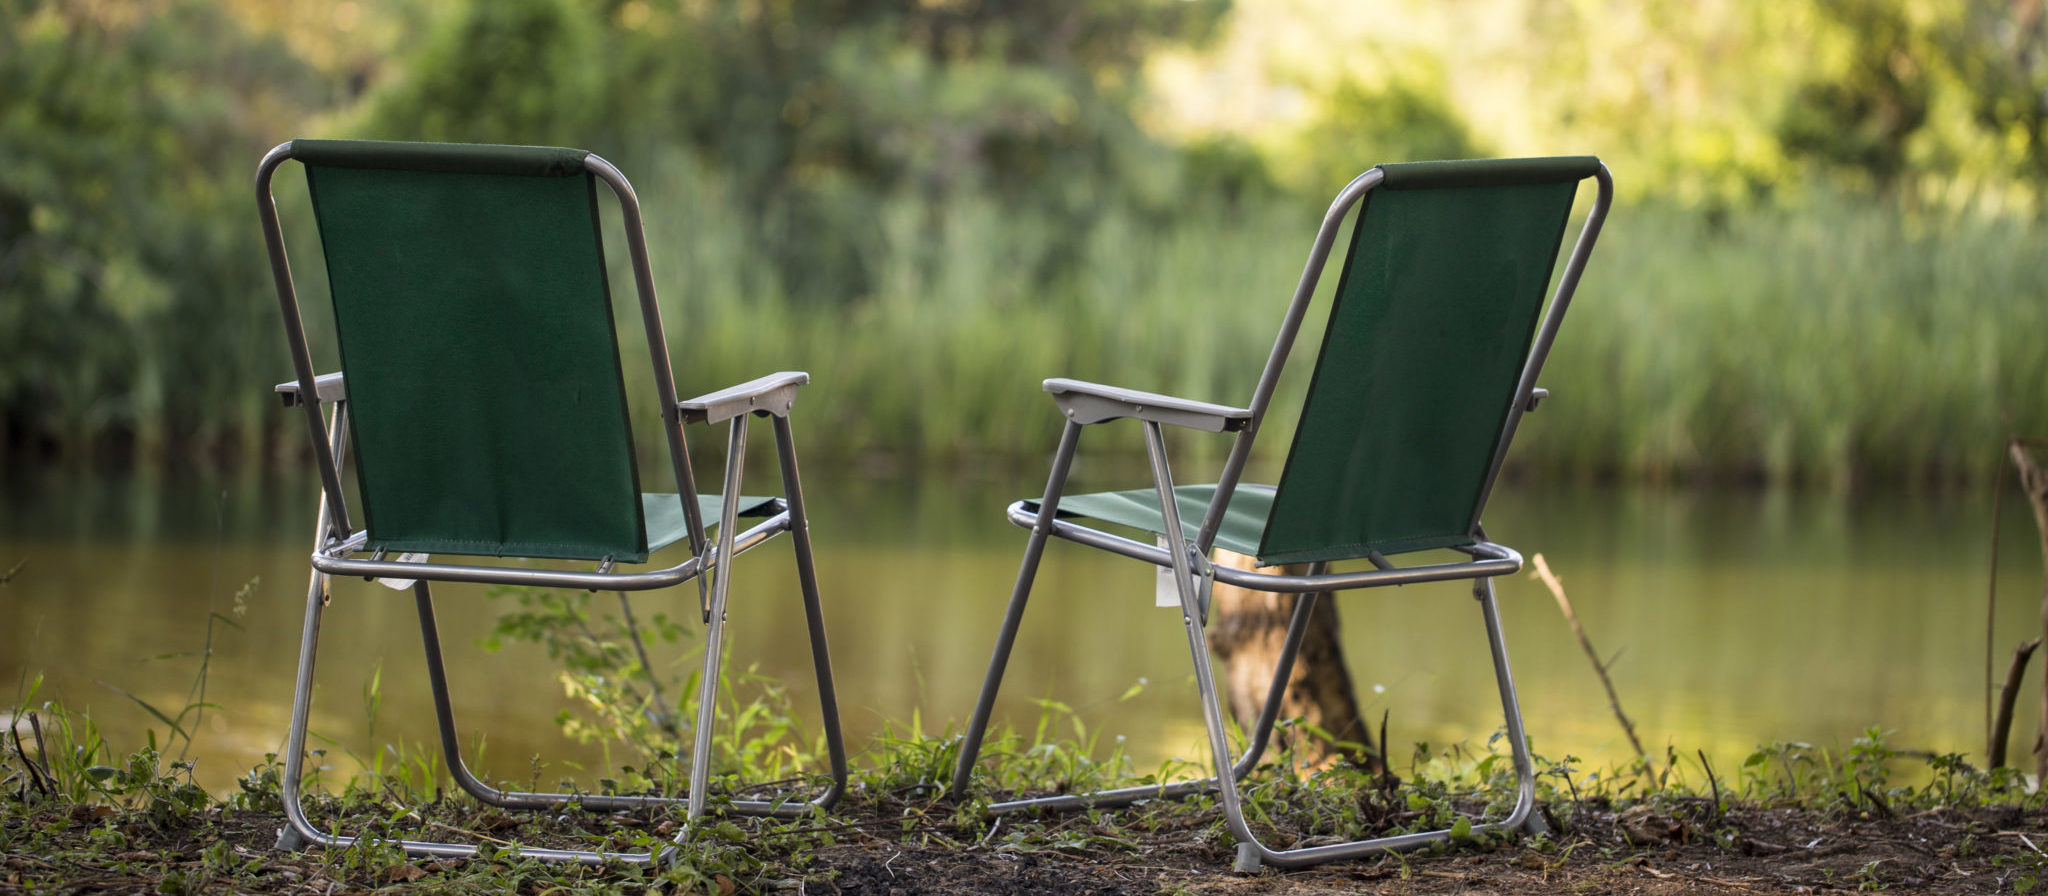 Do not settle for a camping chair that you do not think will provide the best possible camping experience you could have.